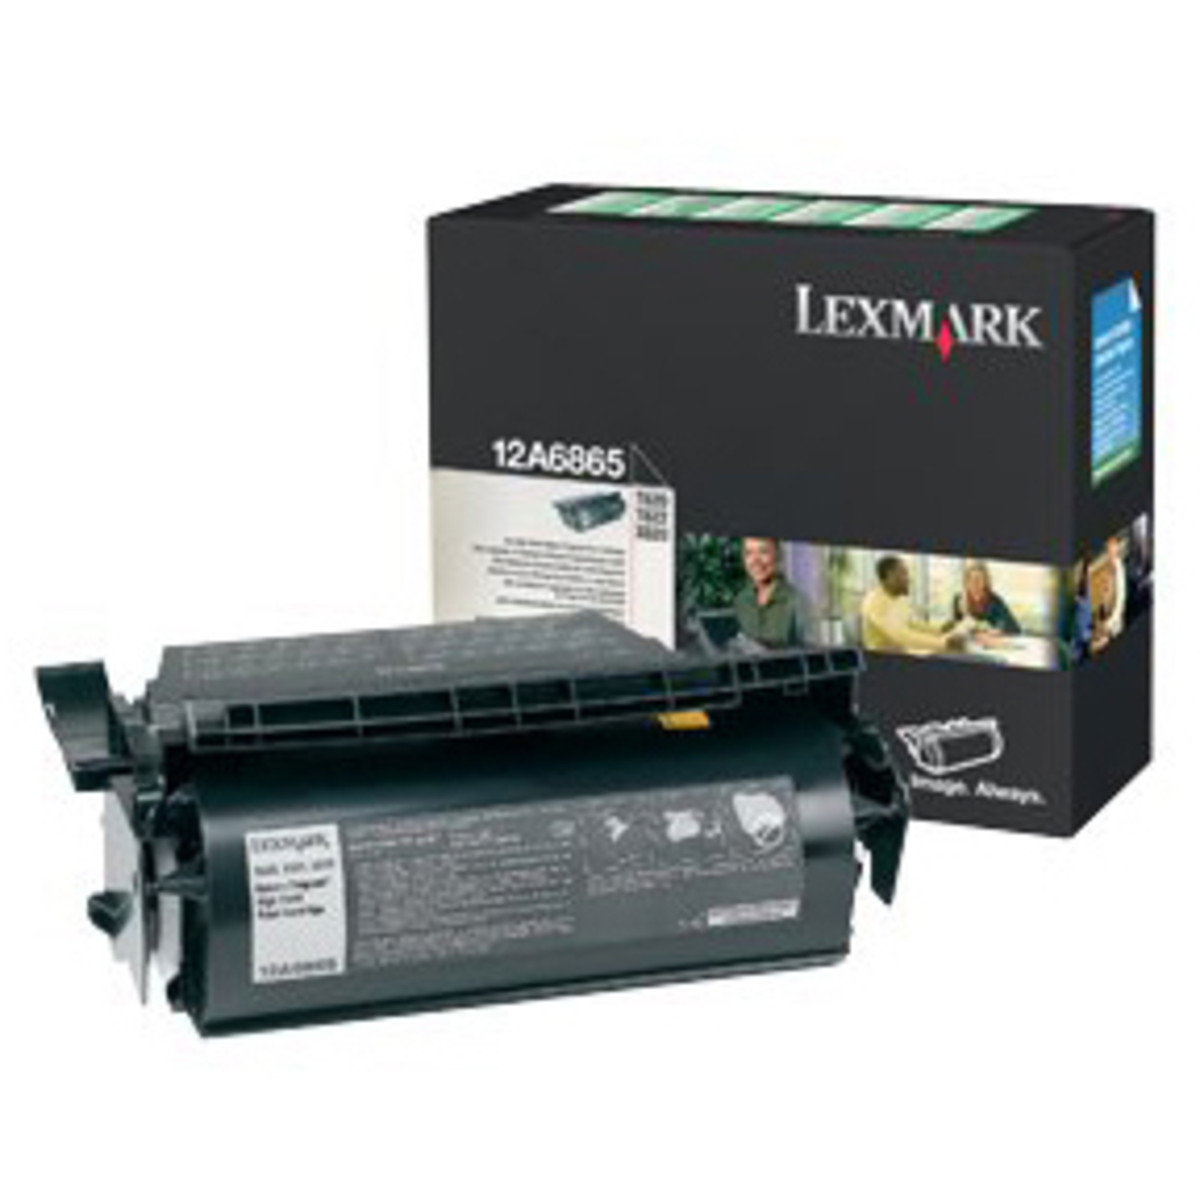 Lexmark 12A6865 Black Toner Cartridge - High Yield